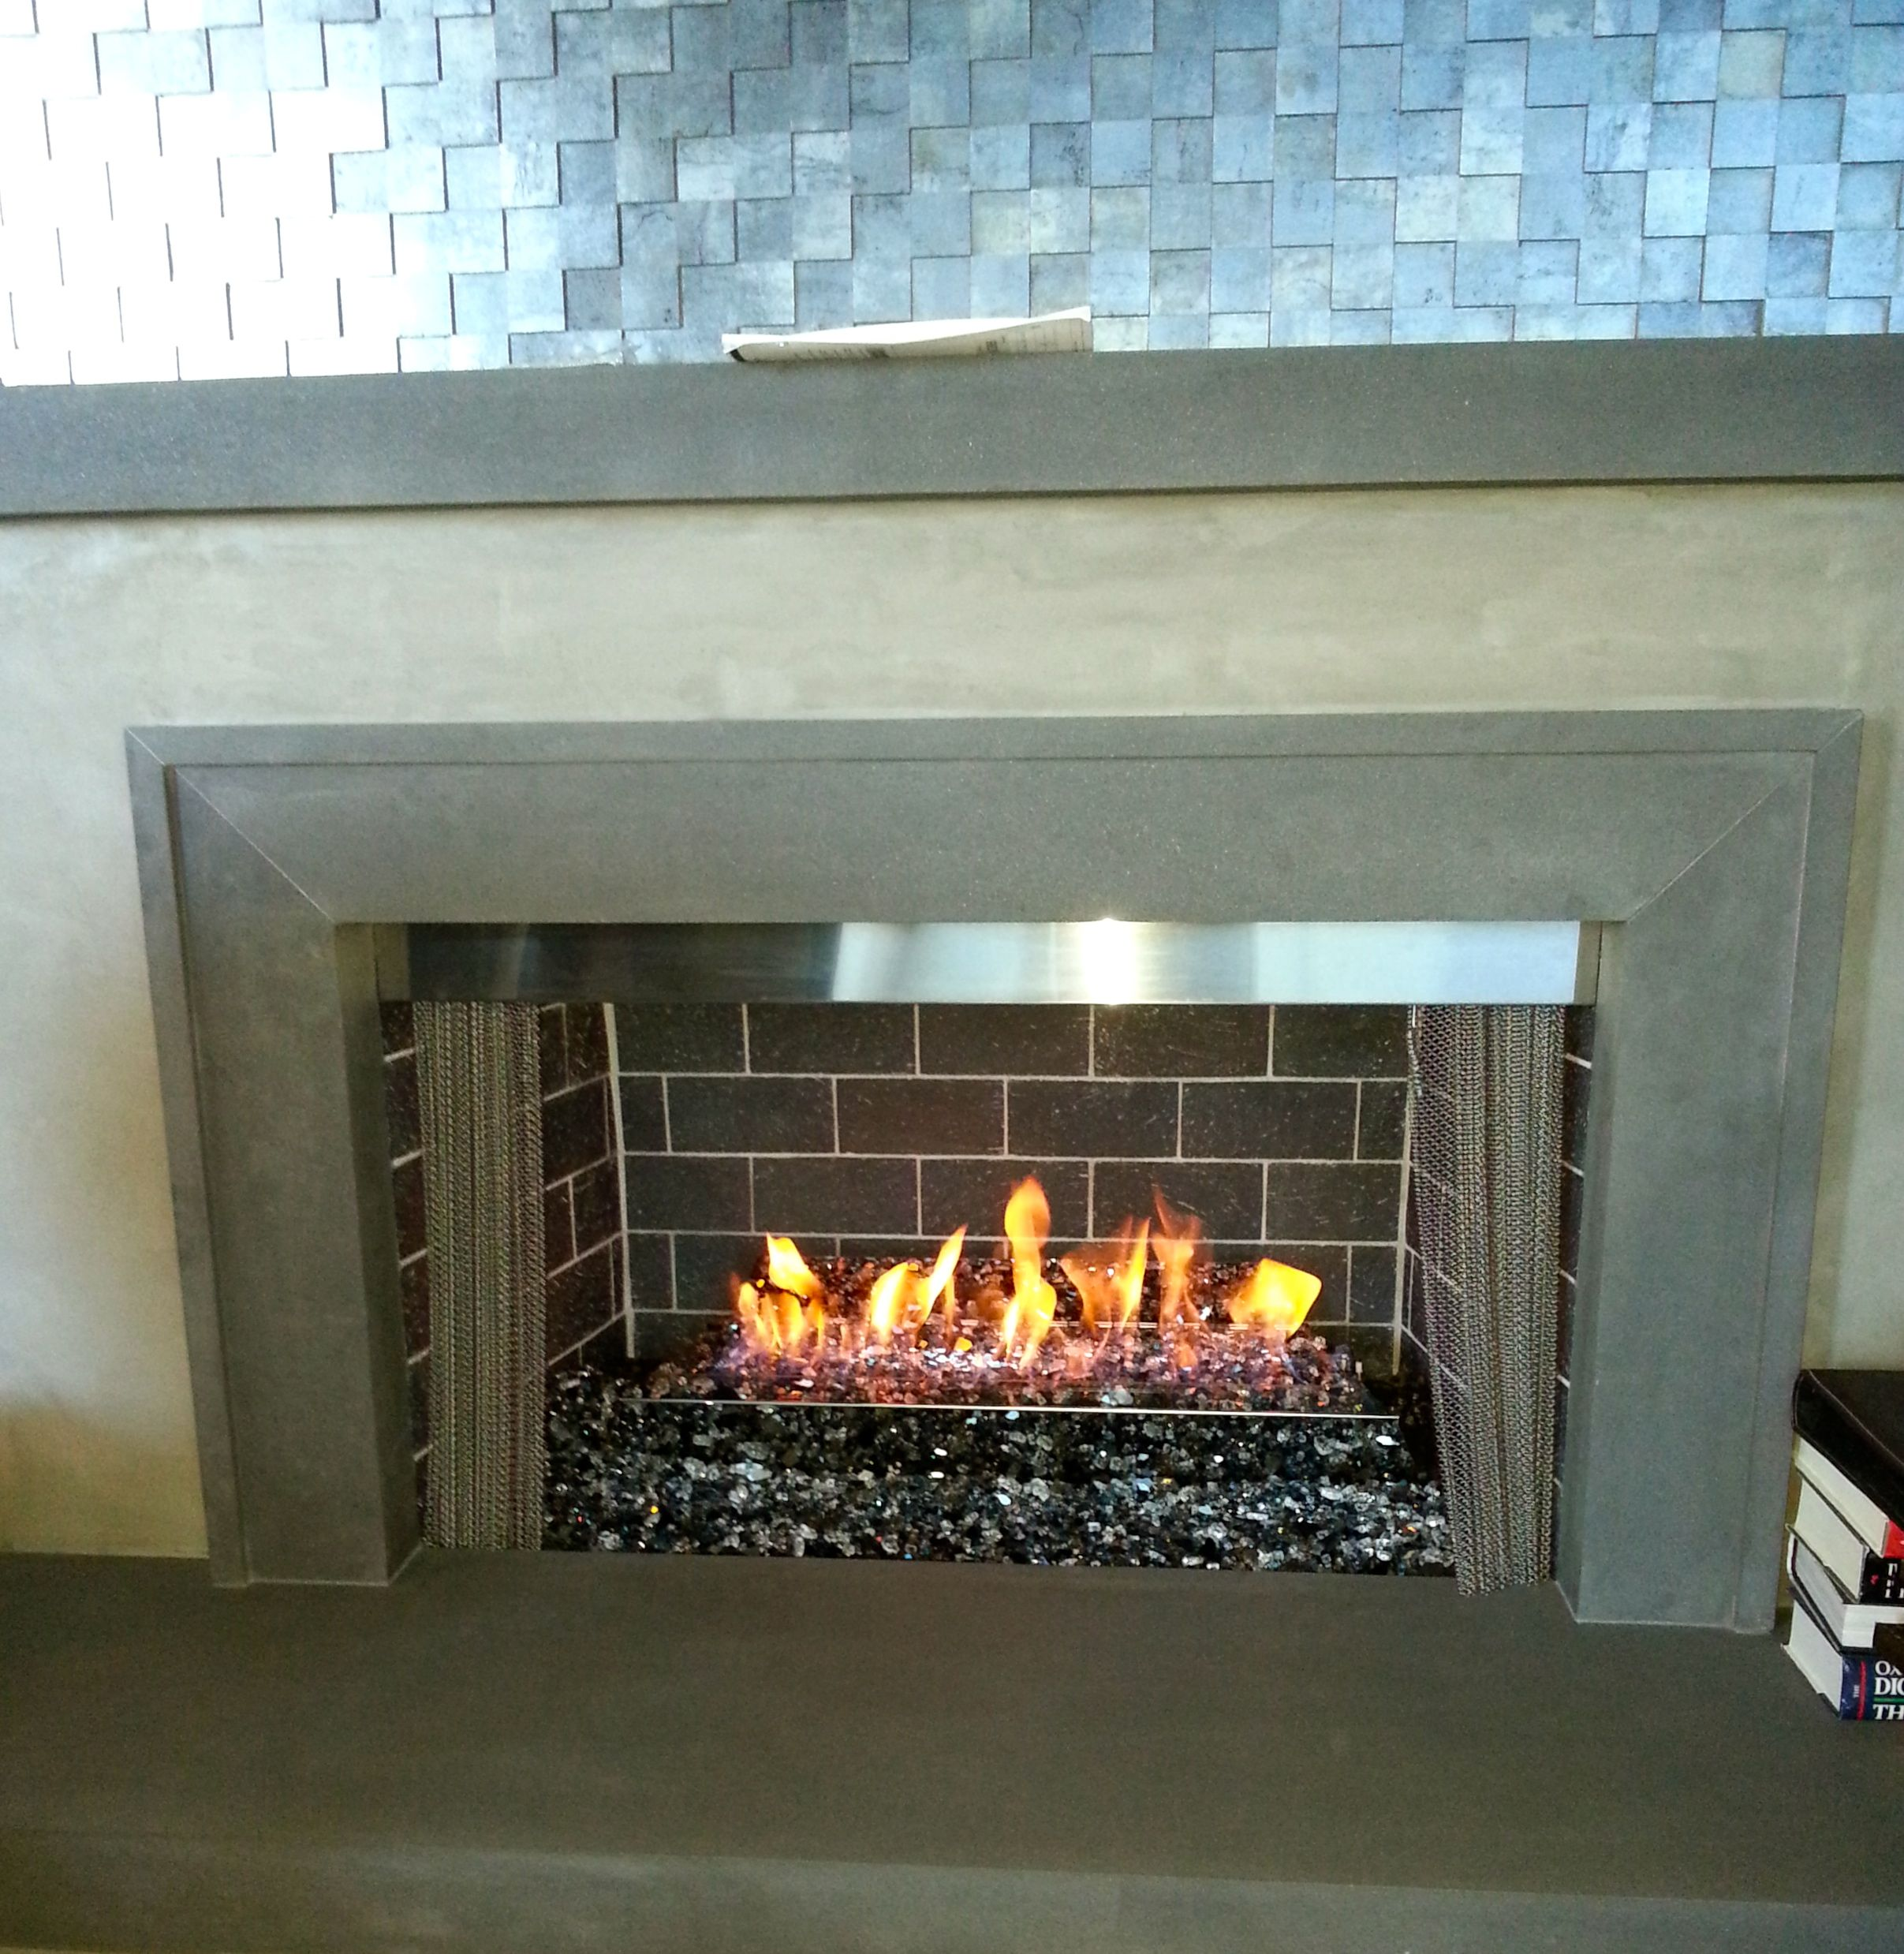 This Contemporary Burner With Stainless Steel Mesh Pull Screens Was